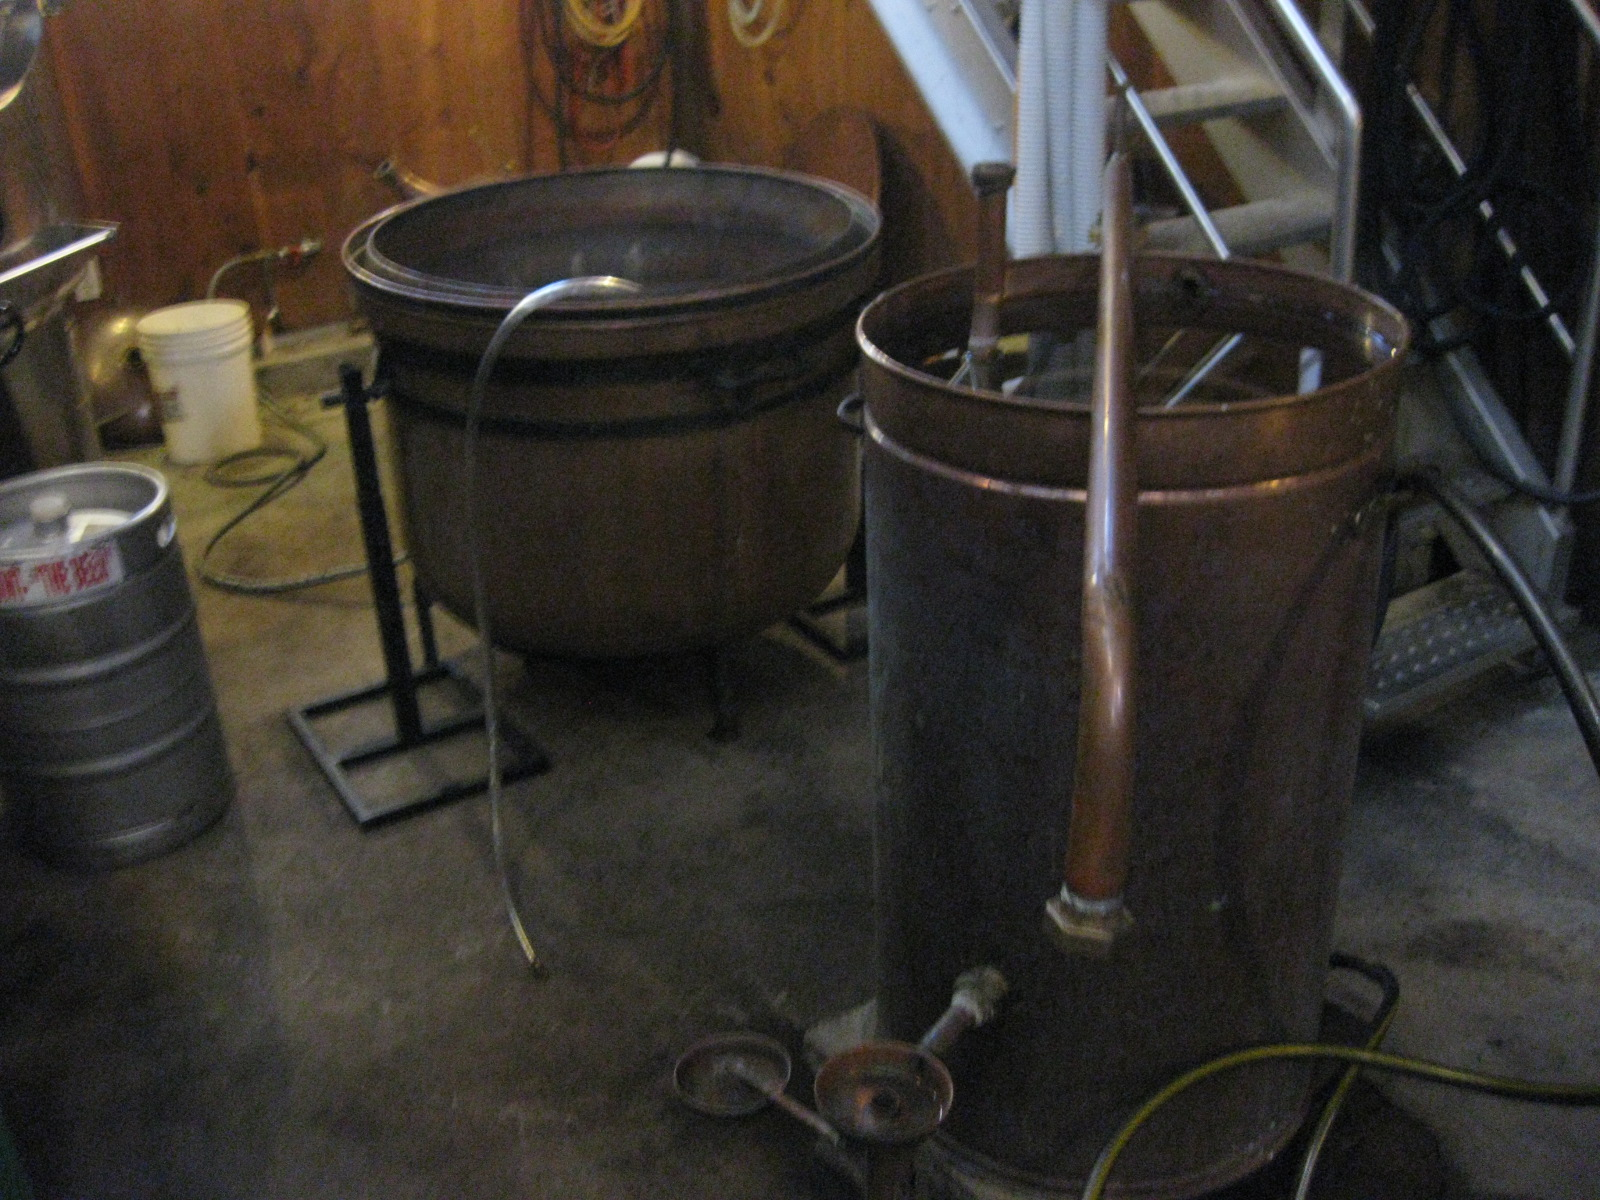 Check out their web page for some cool distilling pics as well.